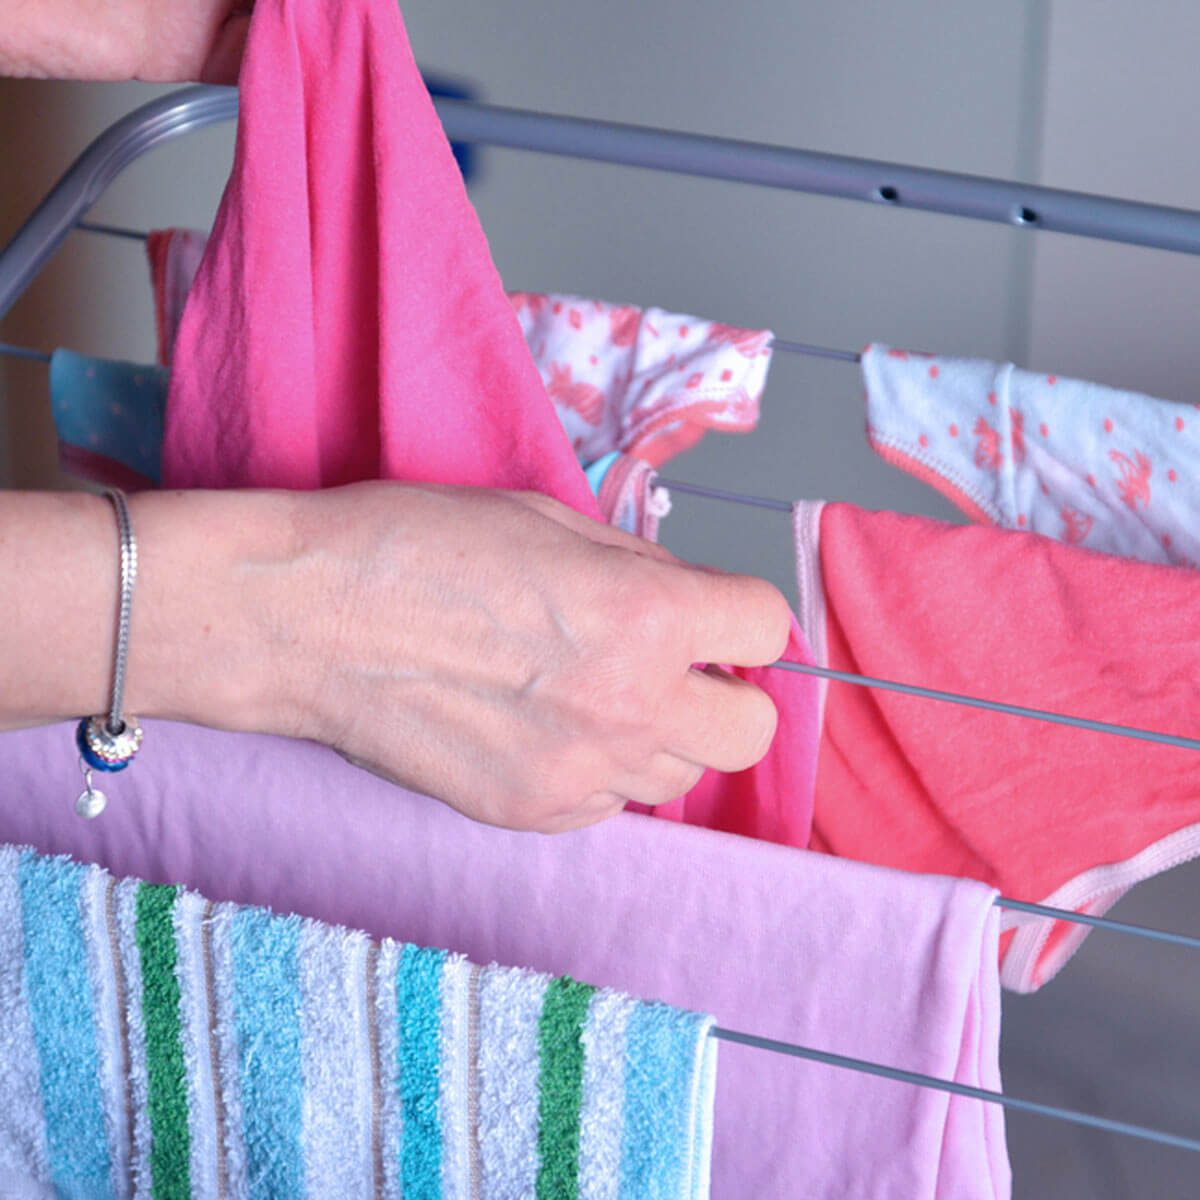 Use a Drying Rack